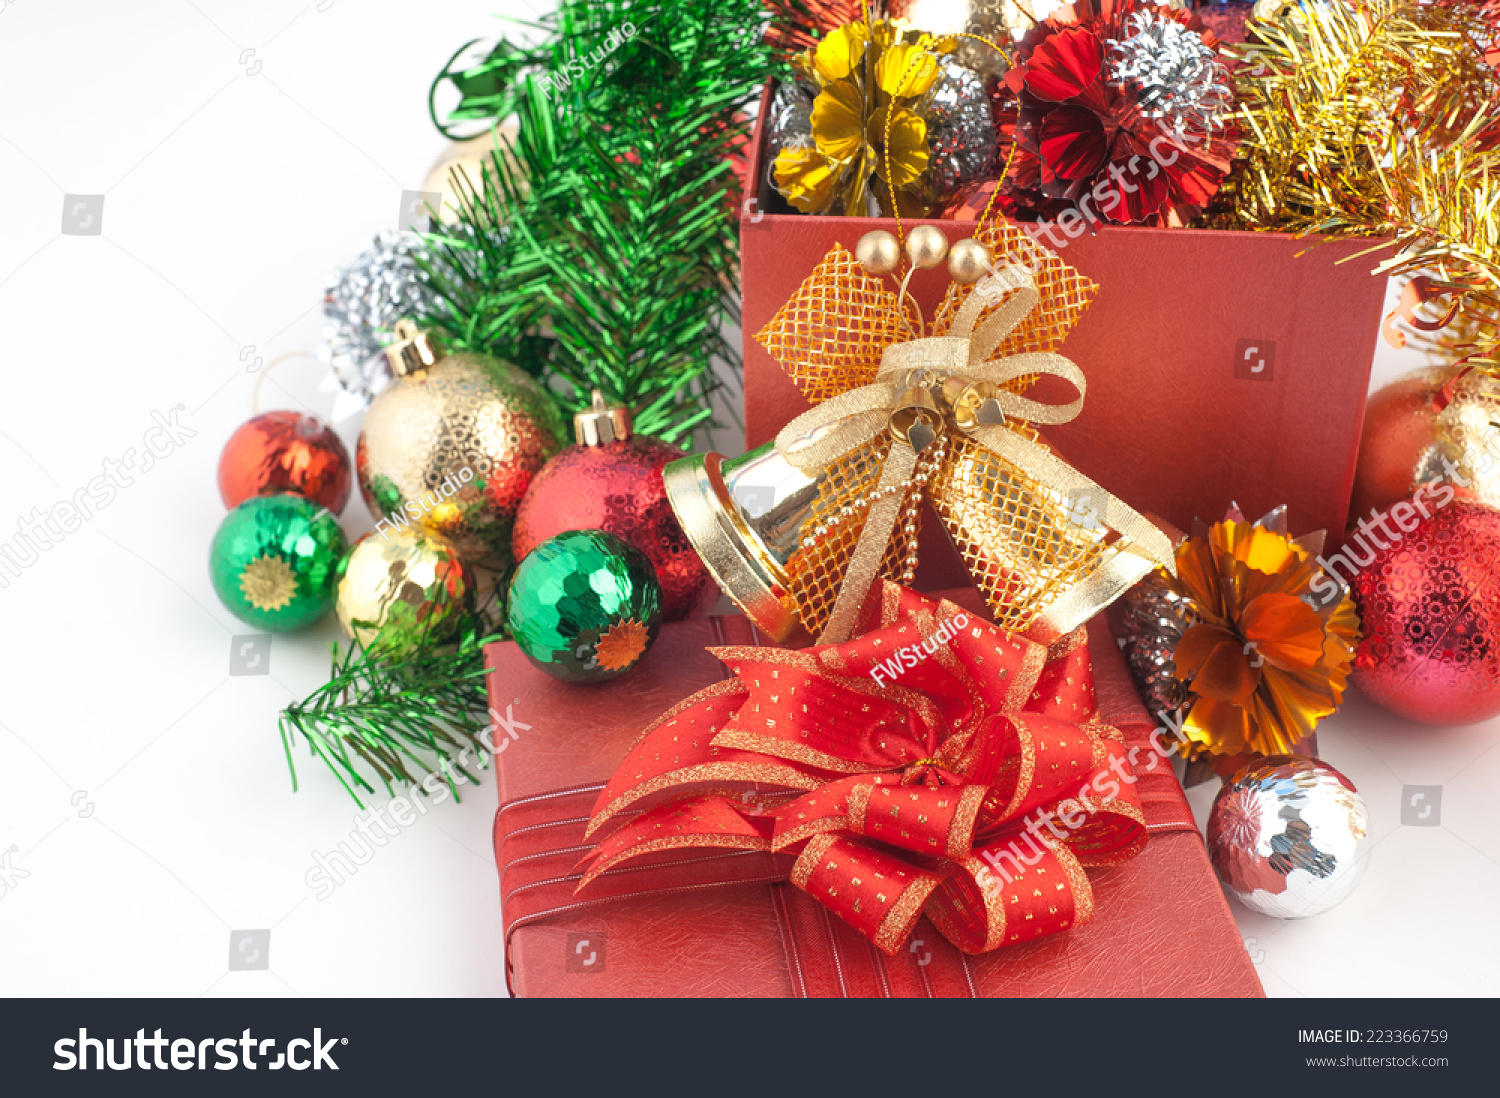 christmas gift box with decorations and color ball isolated on white background ez canvas - Christmas Gift Decorations